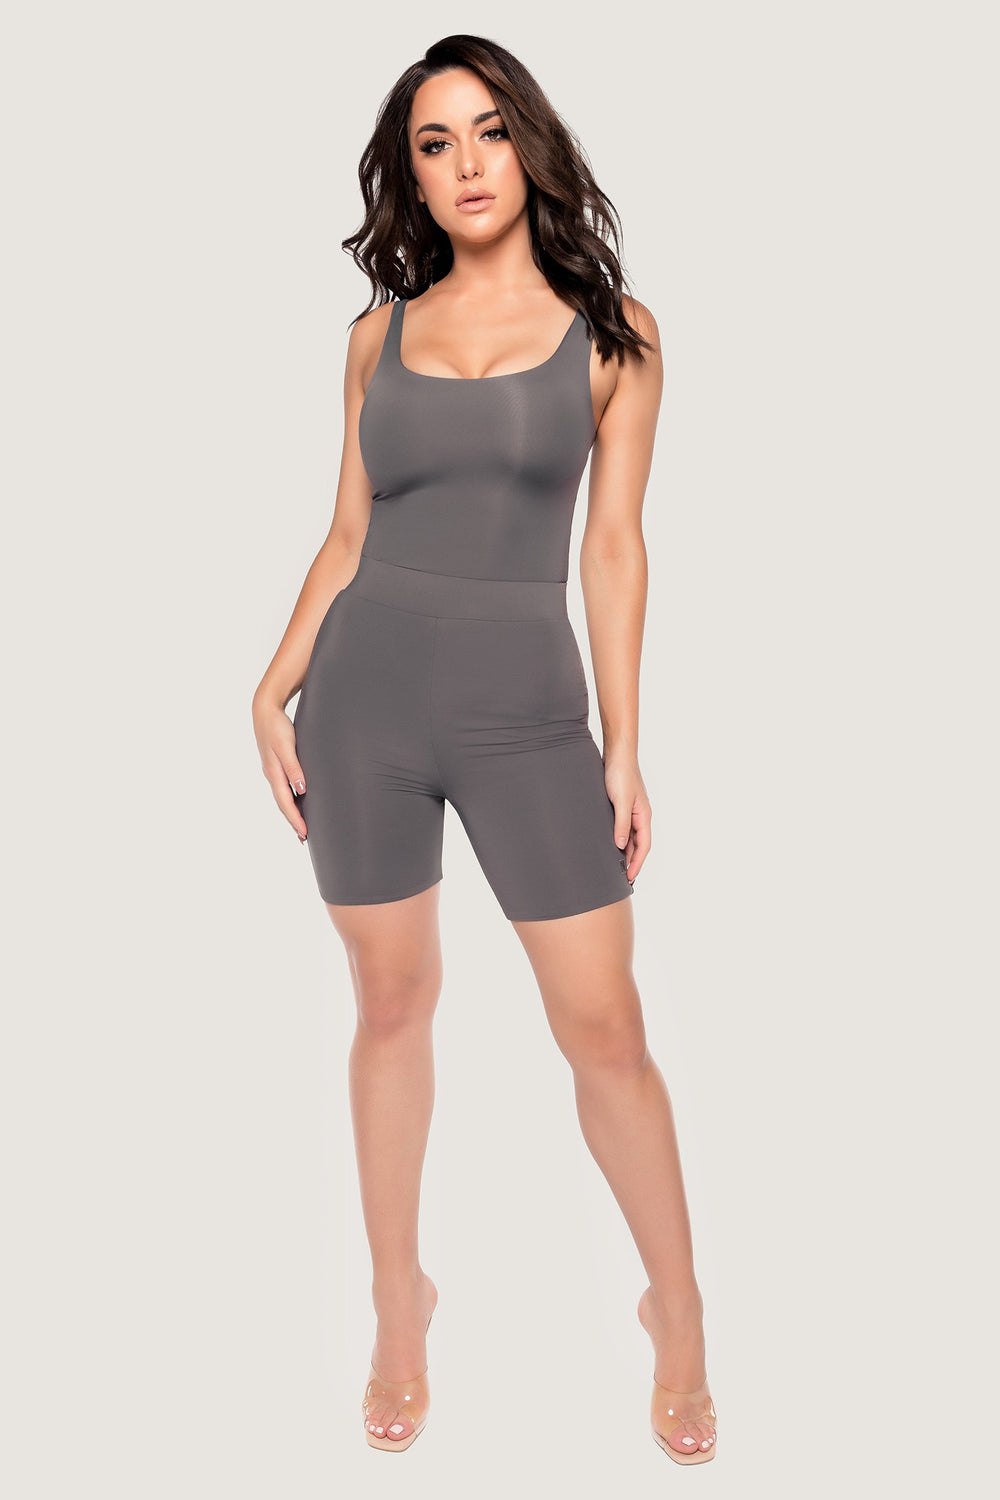 Jaelyn Thick Strap Scoop Neck Bodysuit - Charcoal - MESHKI